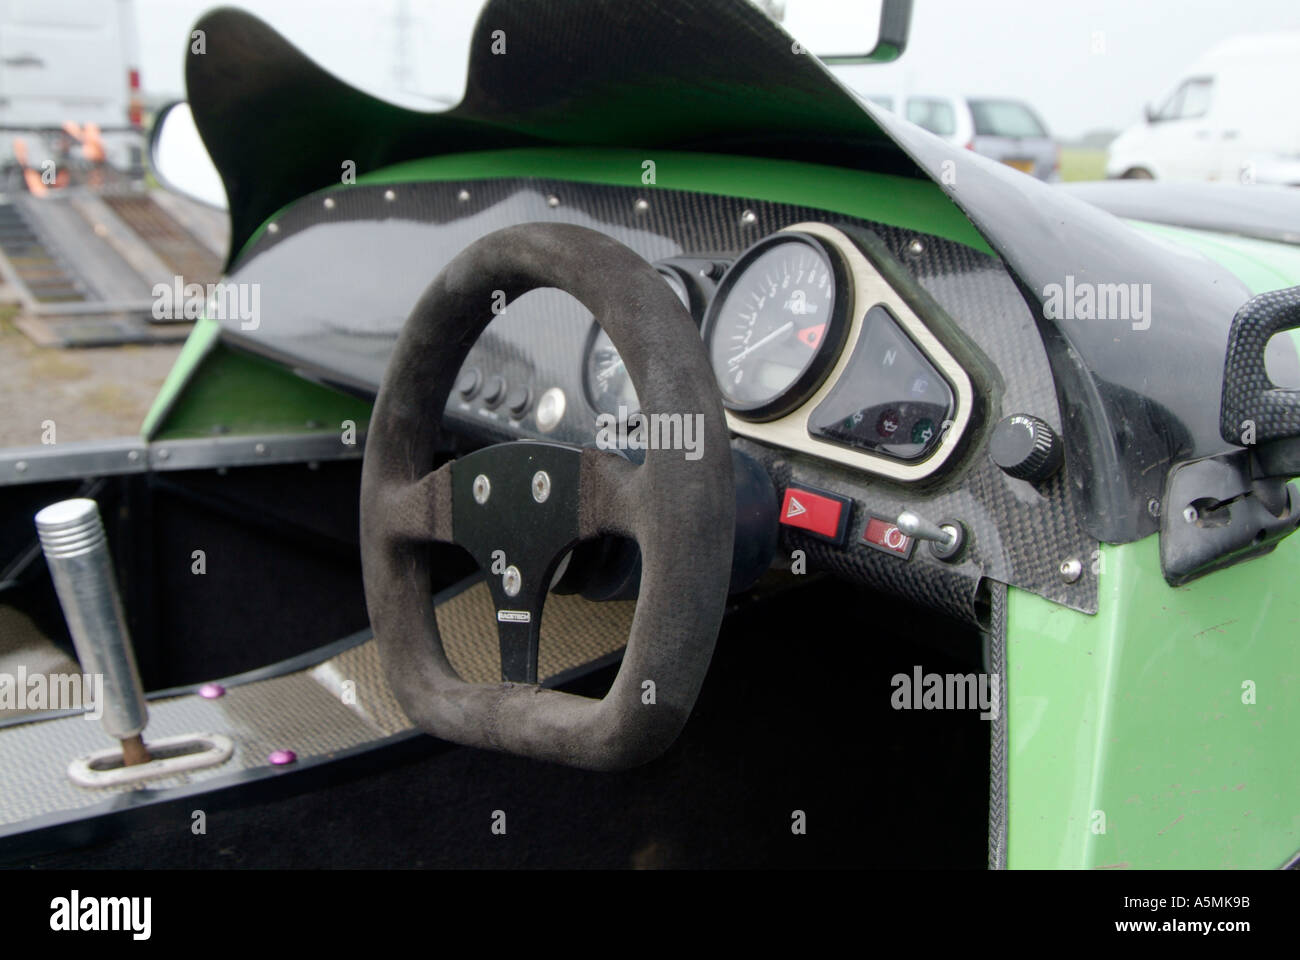 racing car interior sports car lightweight no luxury steering wheel stock photo royalty free. Black Bedroom Furniture Sets. Home Design Ideas